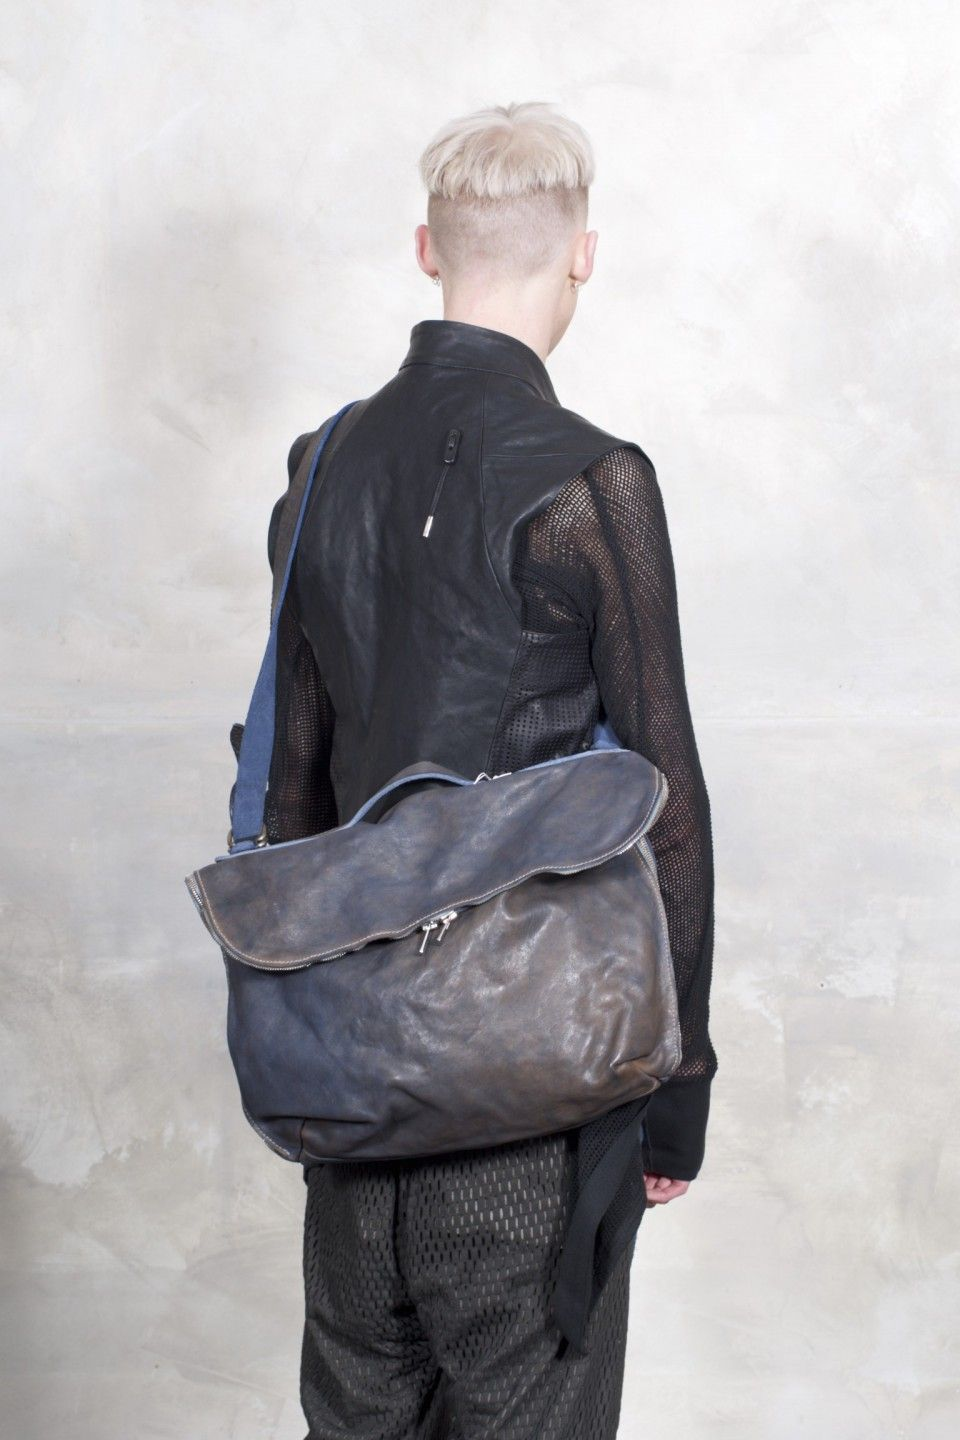 visions of the future  16gui blue m10 cv06t soft horse fg cv bag by guidi